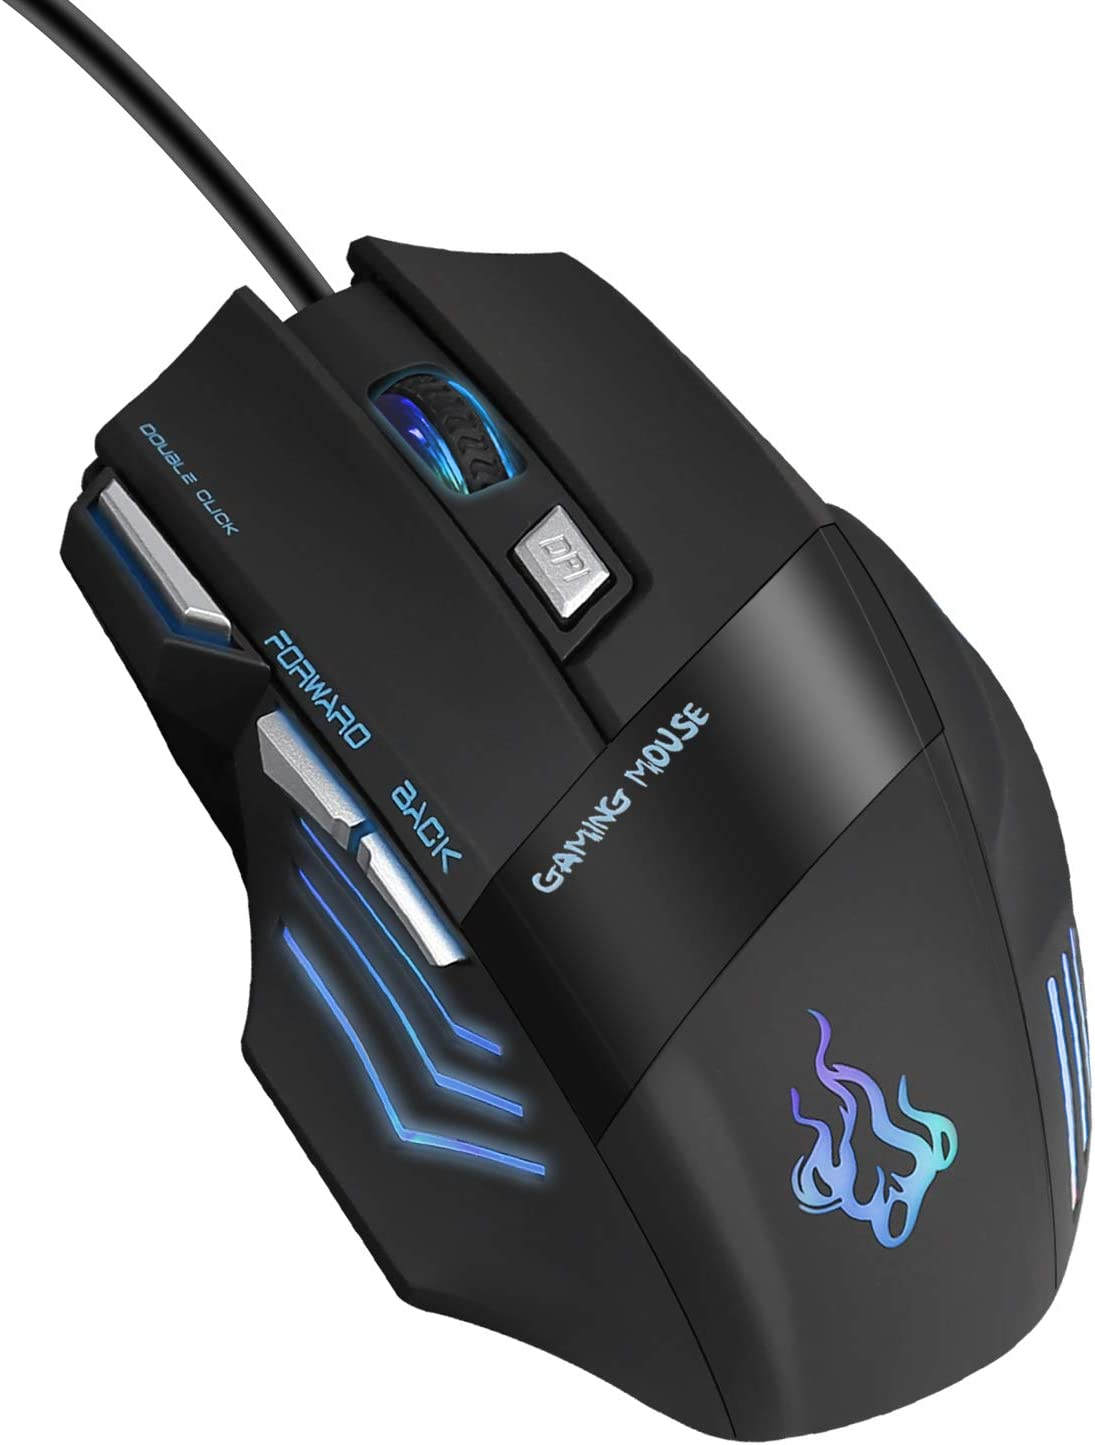 QueenDer Ratón Gaming [Nueva Versión] Ratones Gaming Profesional con Cable USB Gaming Mouse Óptico, 4 dpi Adjustables y 7 Botón Compatible con Windows 7, 8, 10, XP, Vista, ME, 2000 y Mac OS - Negro